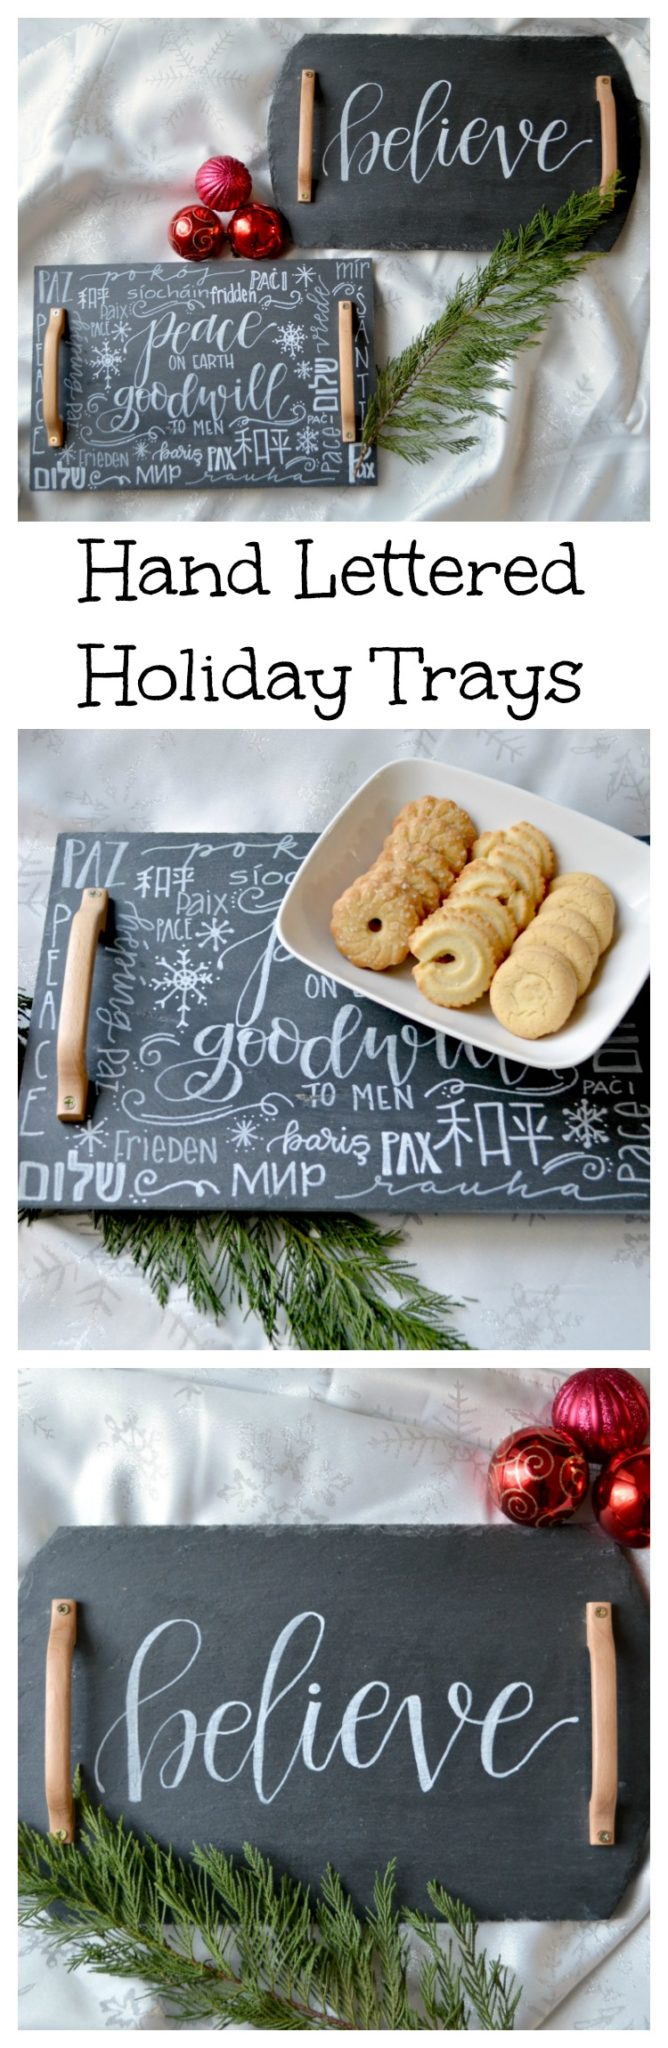 Hand Lettered Holiday Trays